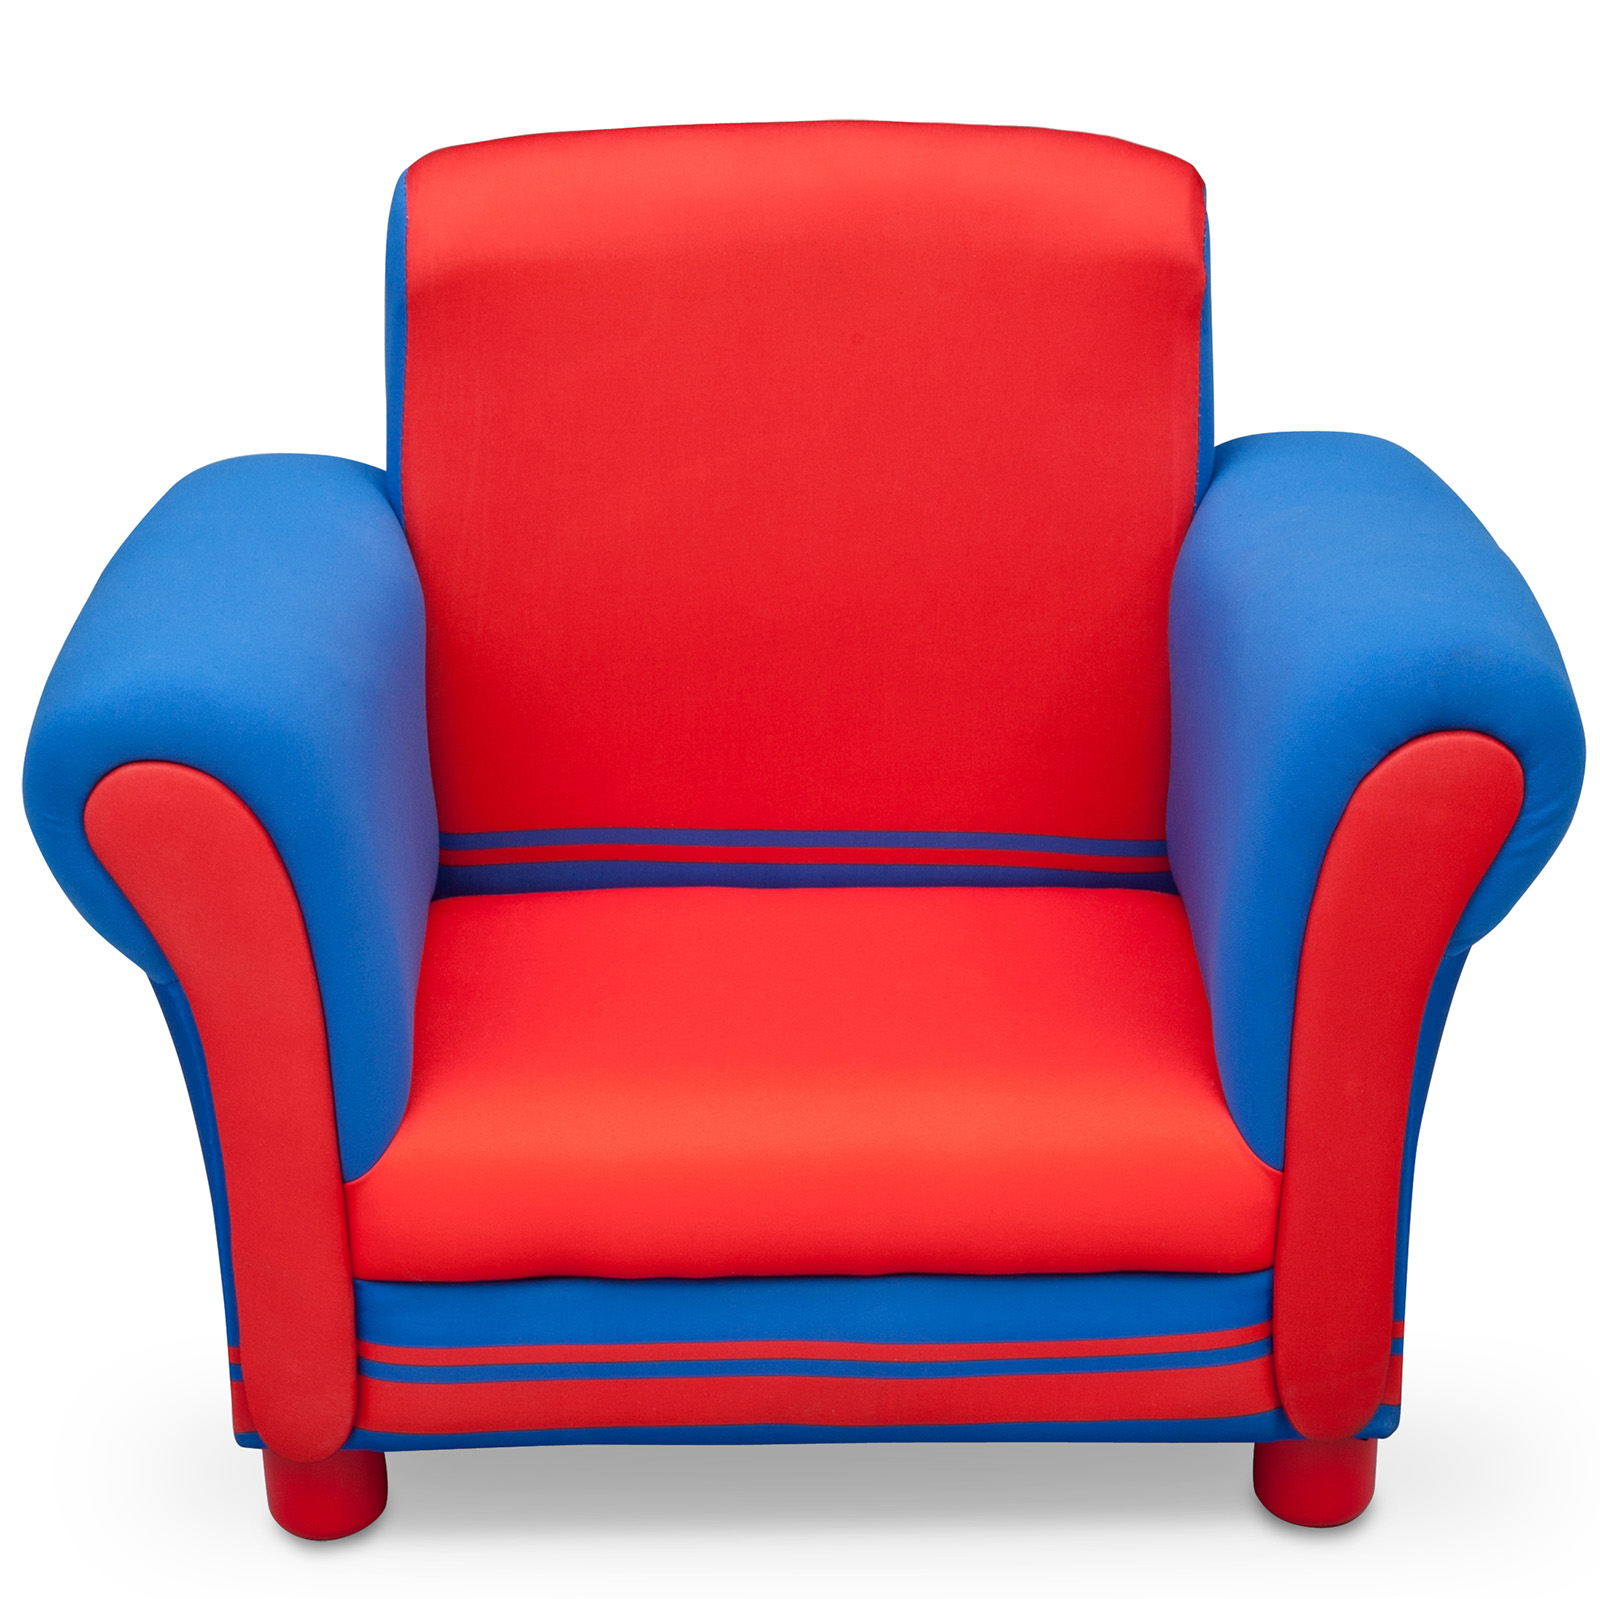 Kids Upholstered Chair New Delta Children Blue Red Childs Upholstered Chair Kids